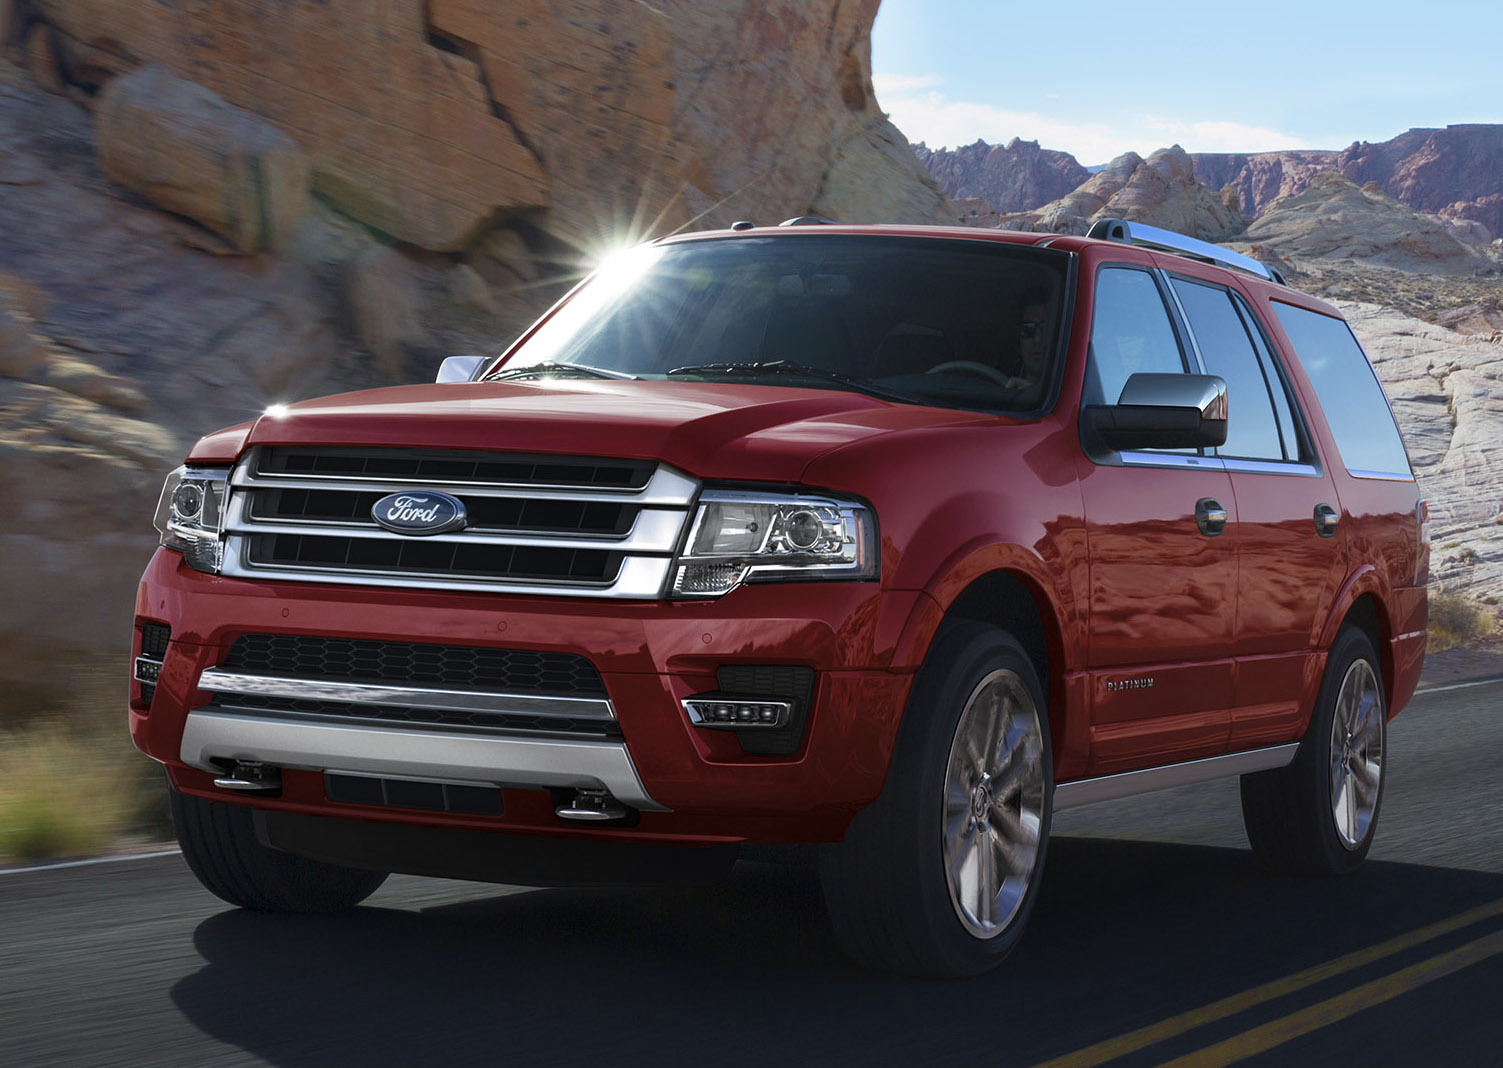 2016 Ford Expedition - Overview - CarGurus